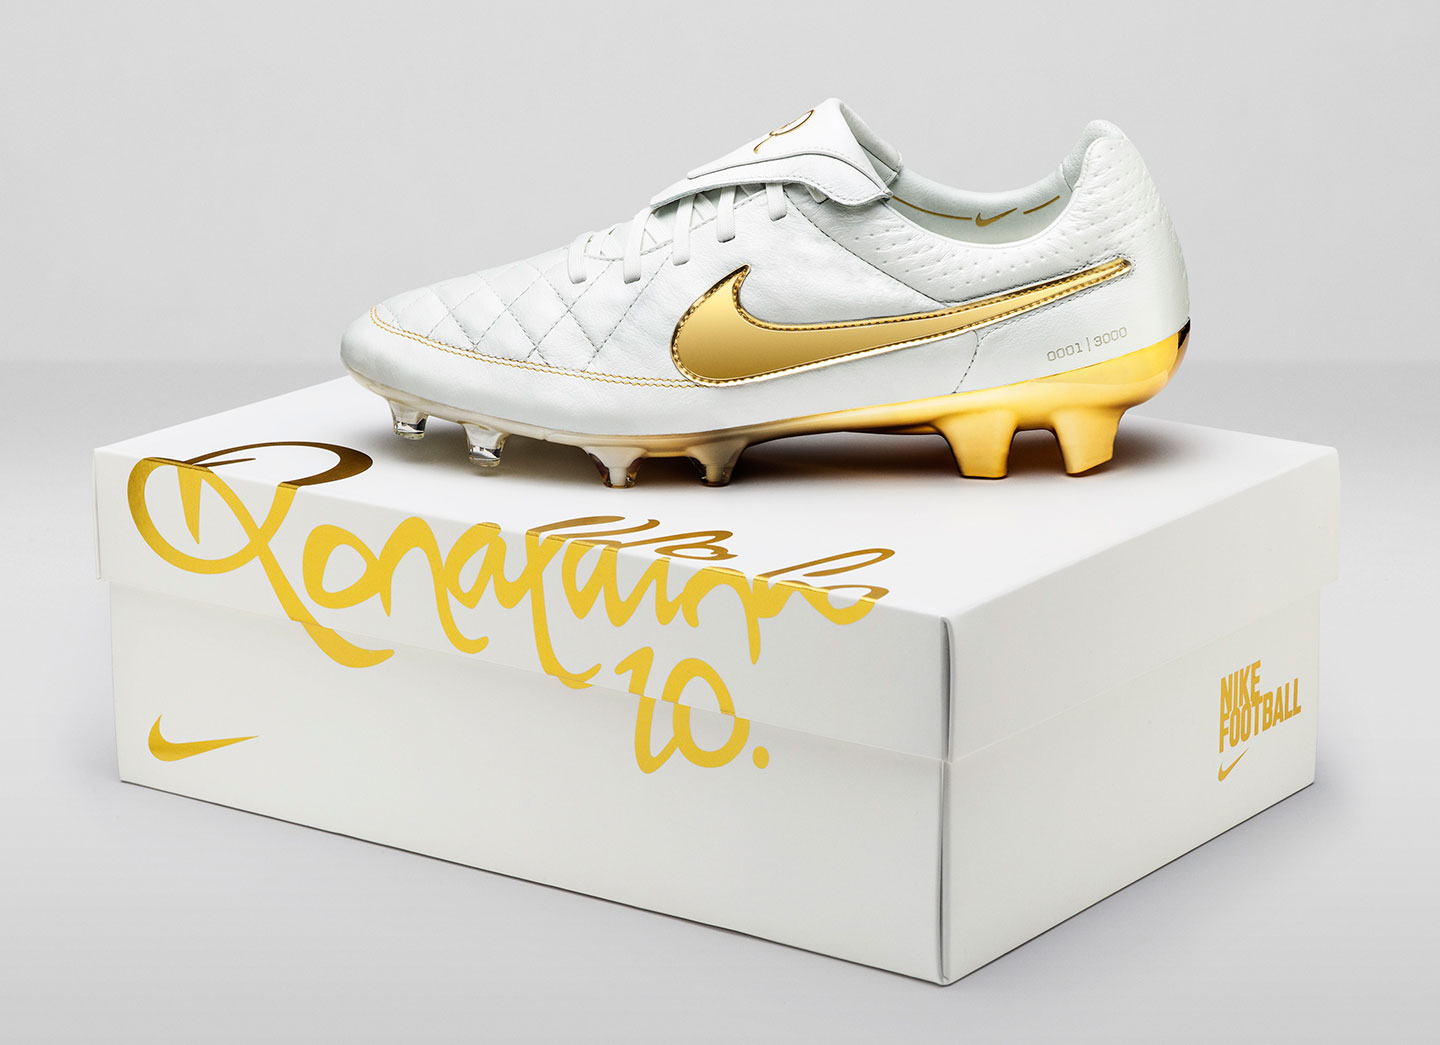 af18a2d3105 Nike Football Ronaldino Tiempo Gold soccer cleats BOX. Nike Ronaldinho 10  limited edition Tiempo Legend Touch ...